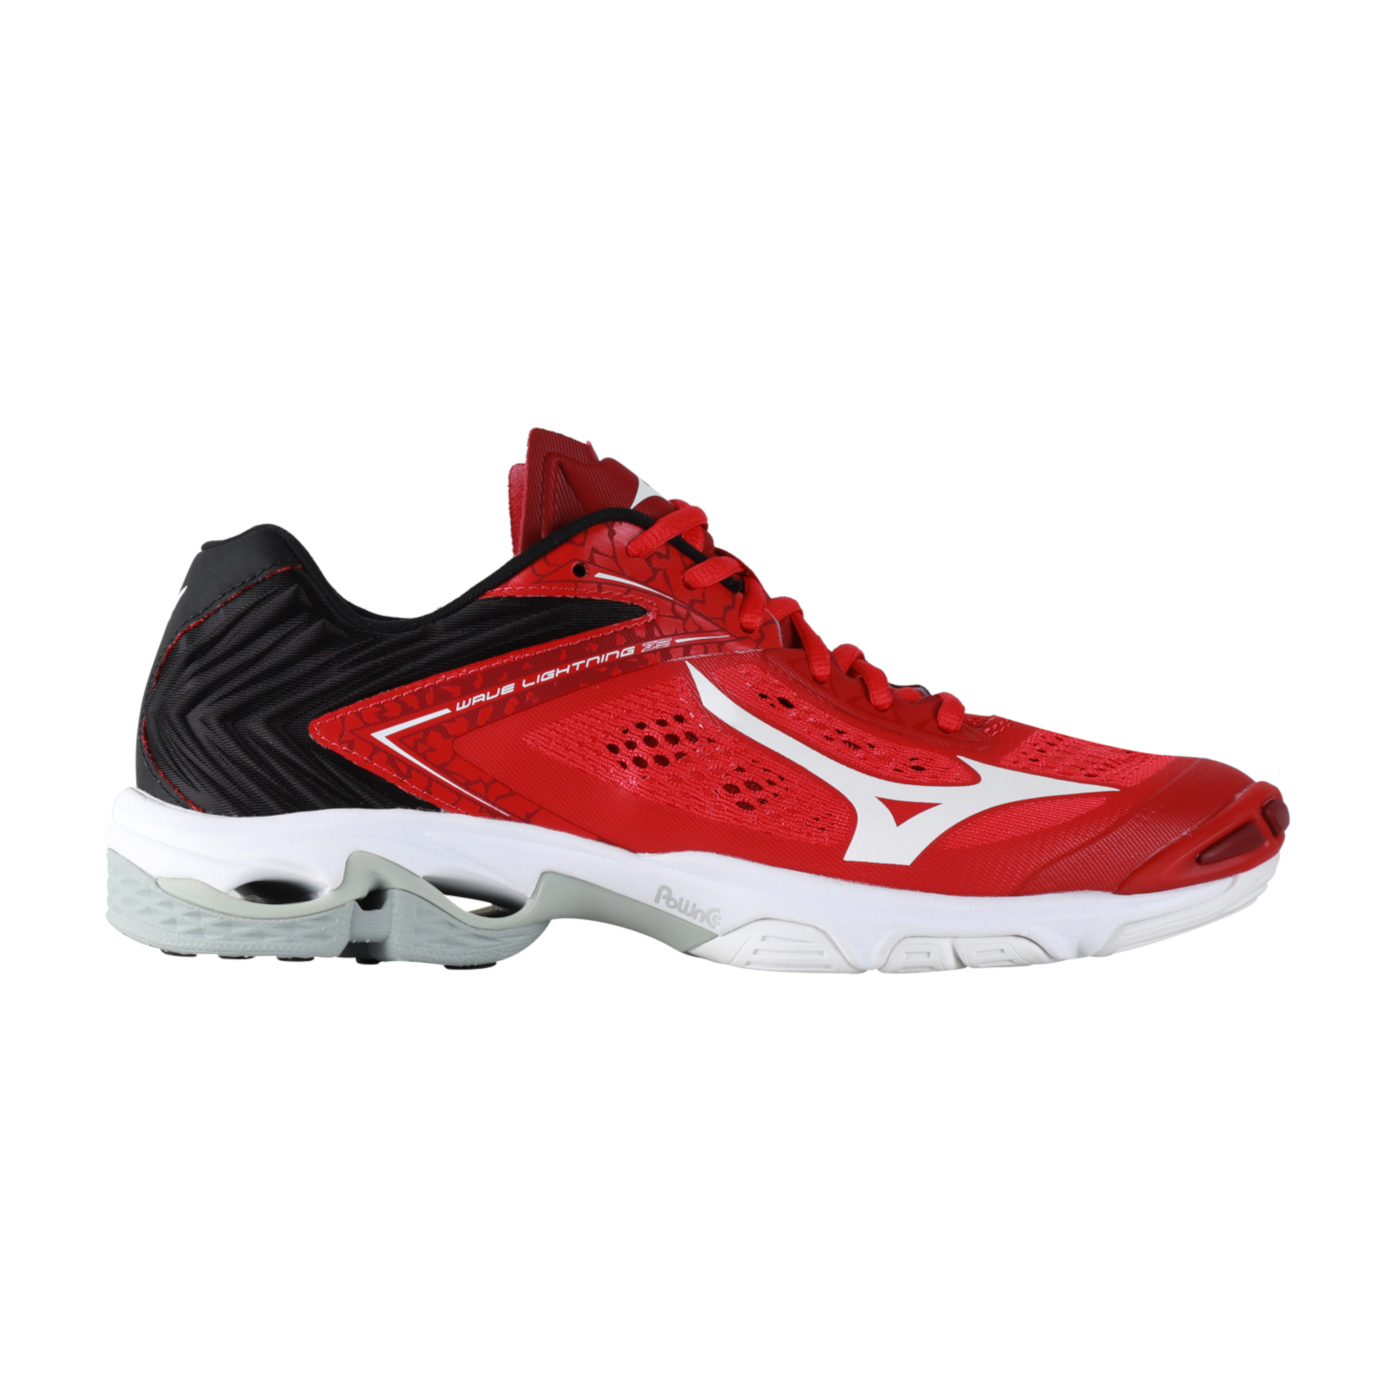 WAVE LIGHTNING Z5 - TOMATO/WHITE/BLACK